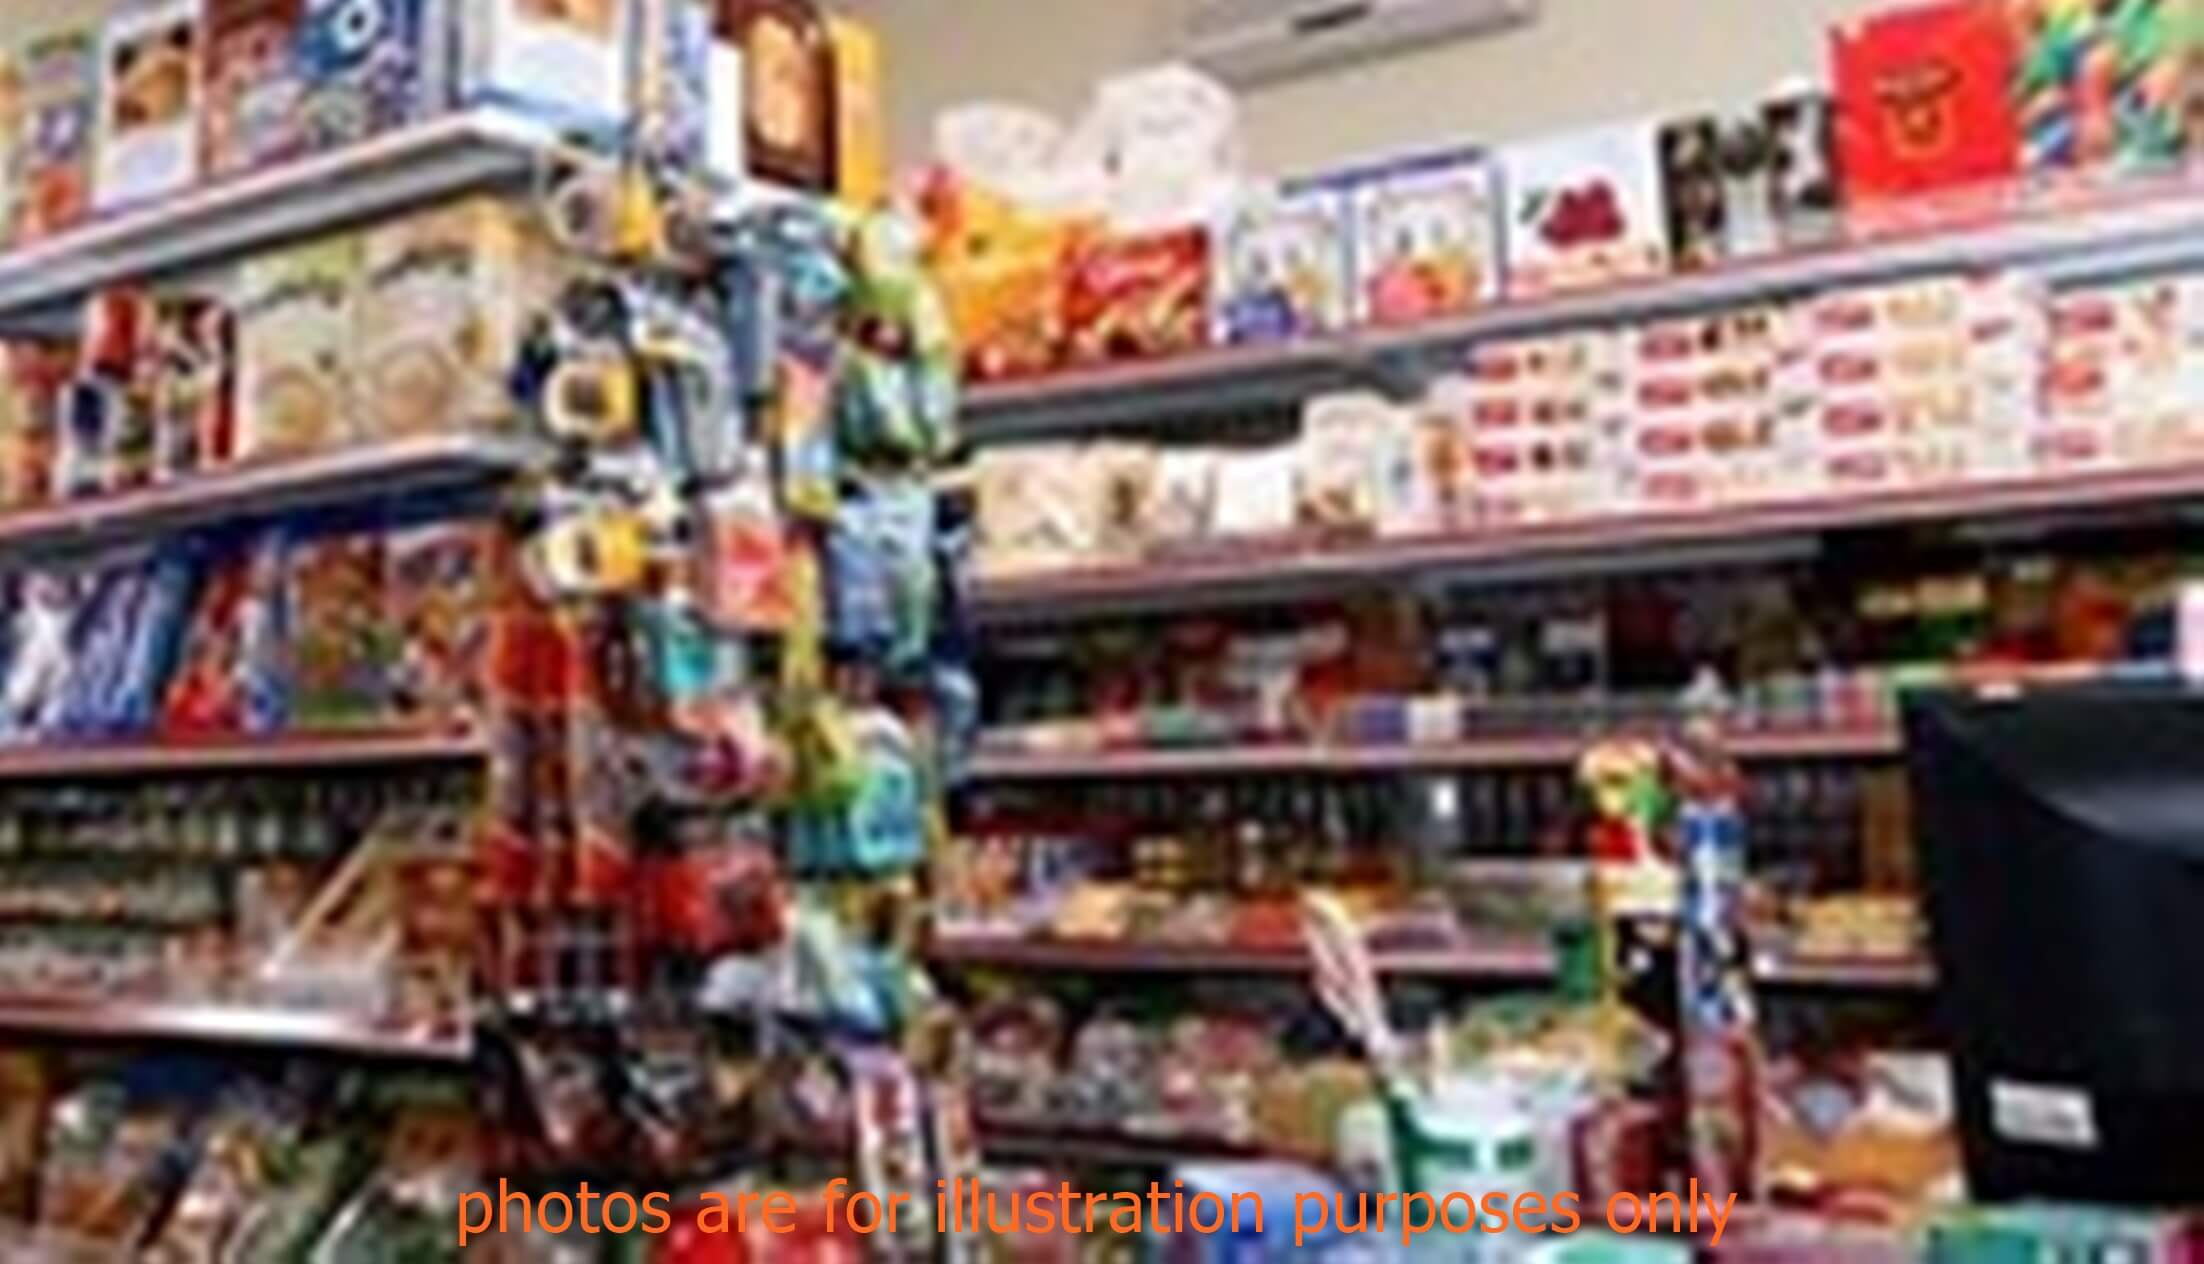 Minimart @ Beauty world near cafe | For Sale | Look For Buyer - Business for Sale, Buy a Ready Business